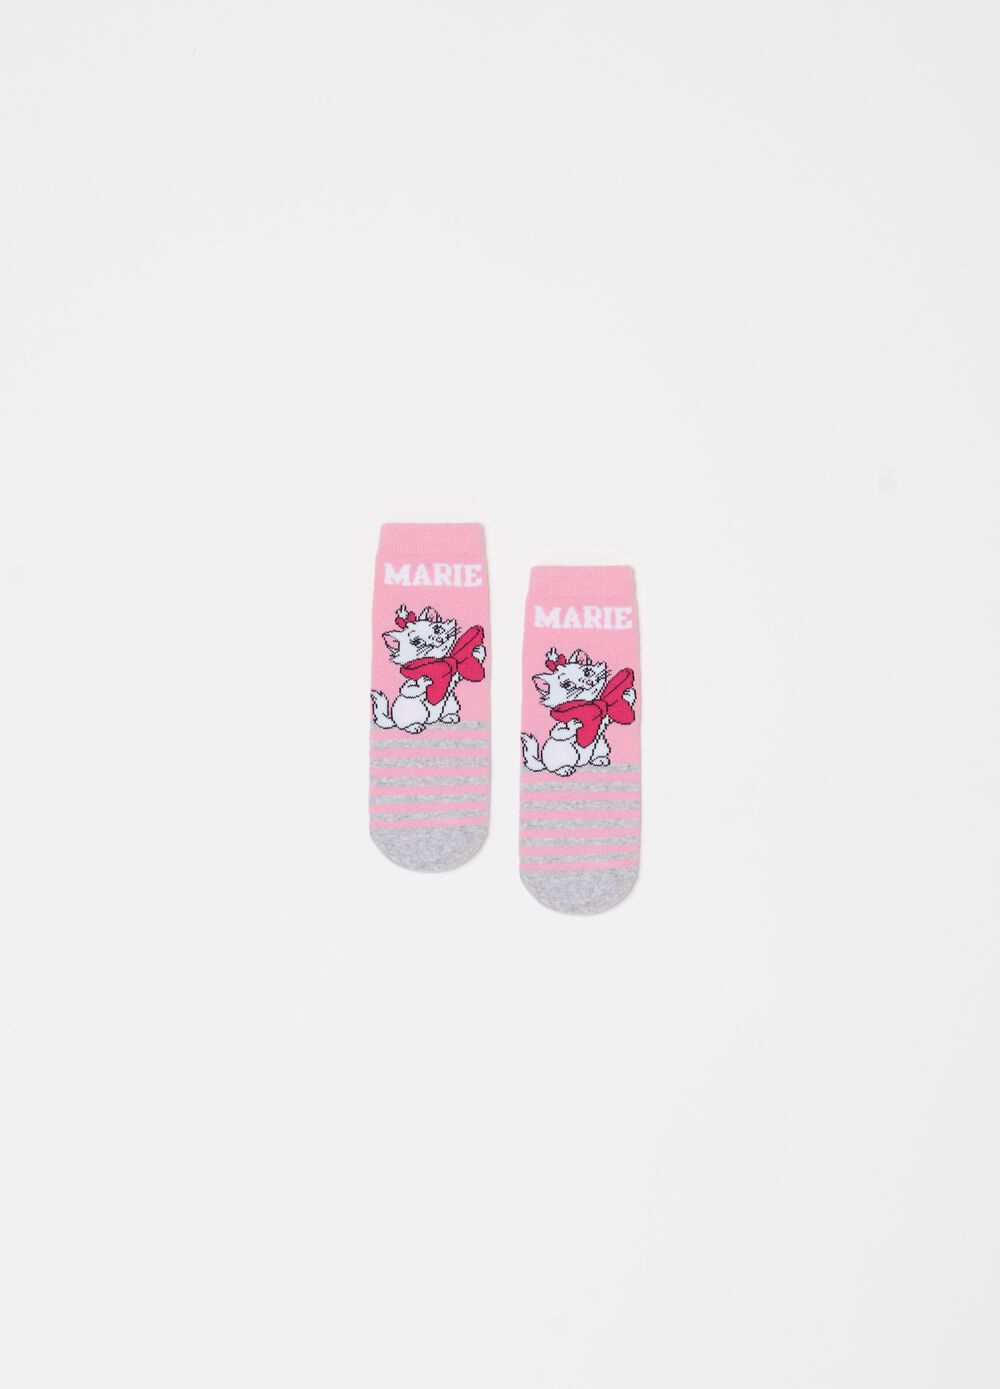 Aristocats slipper socks